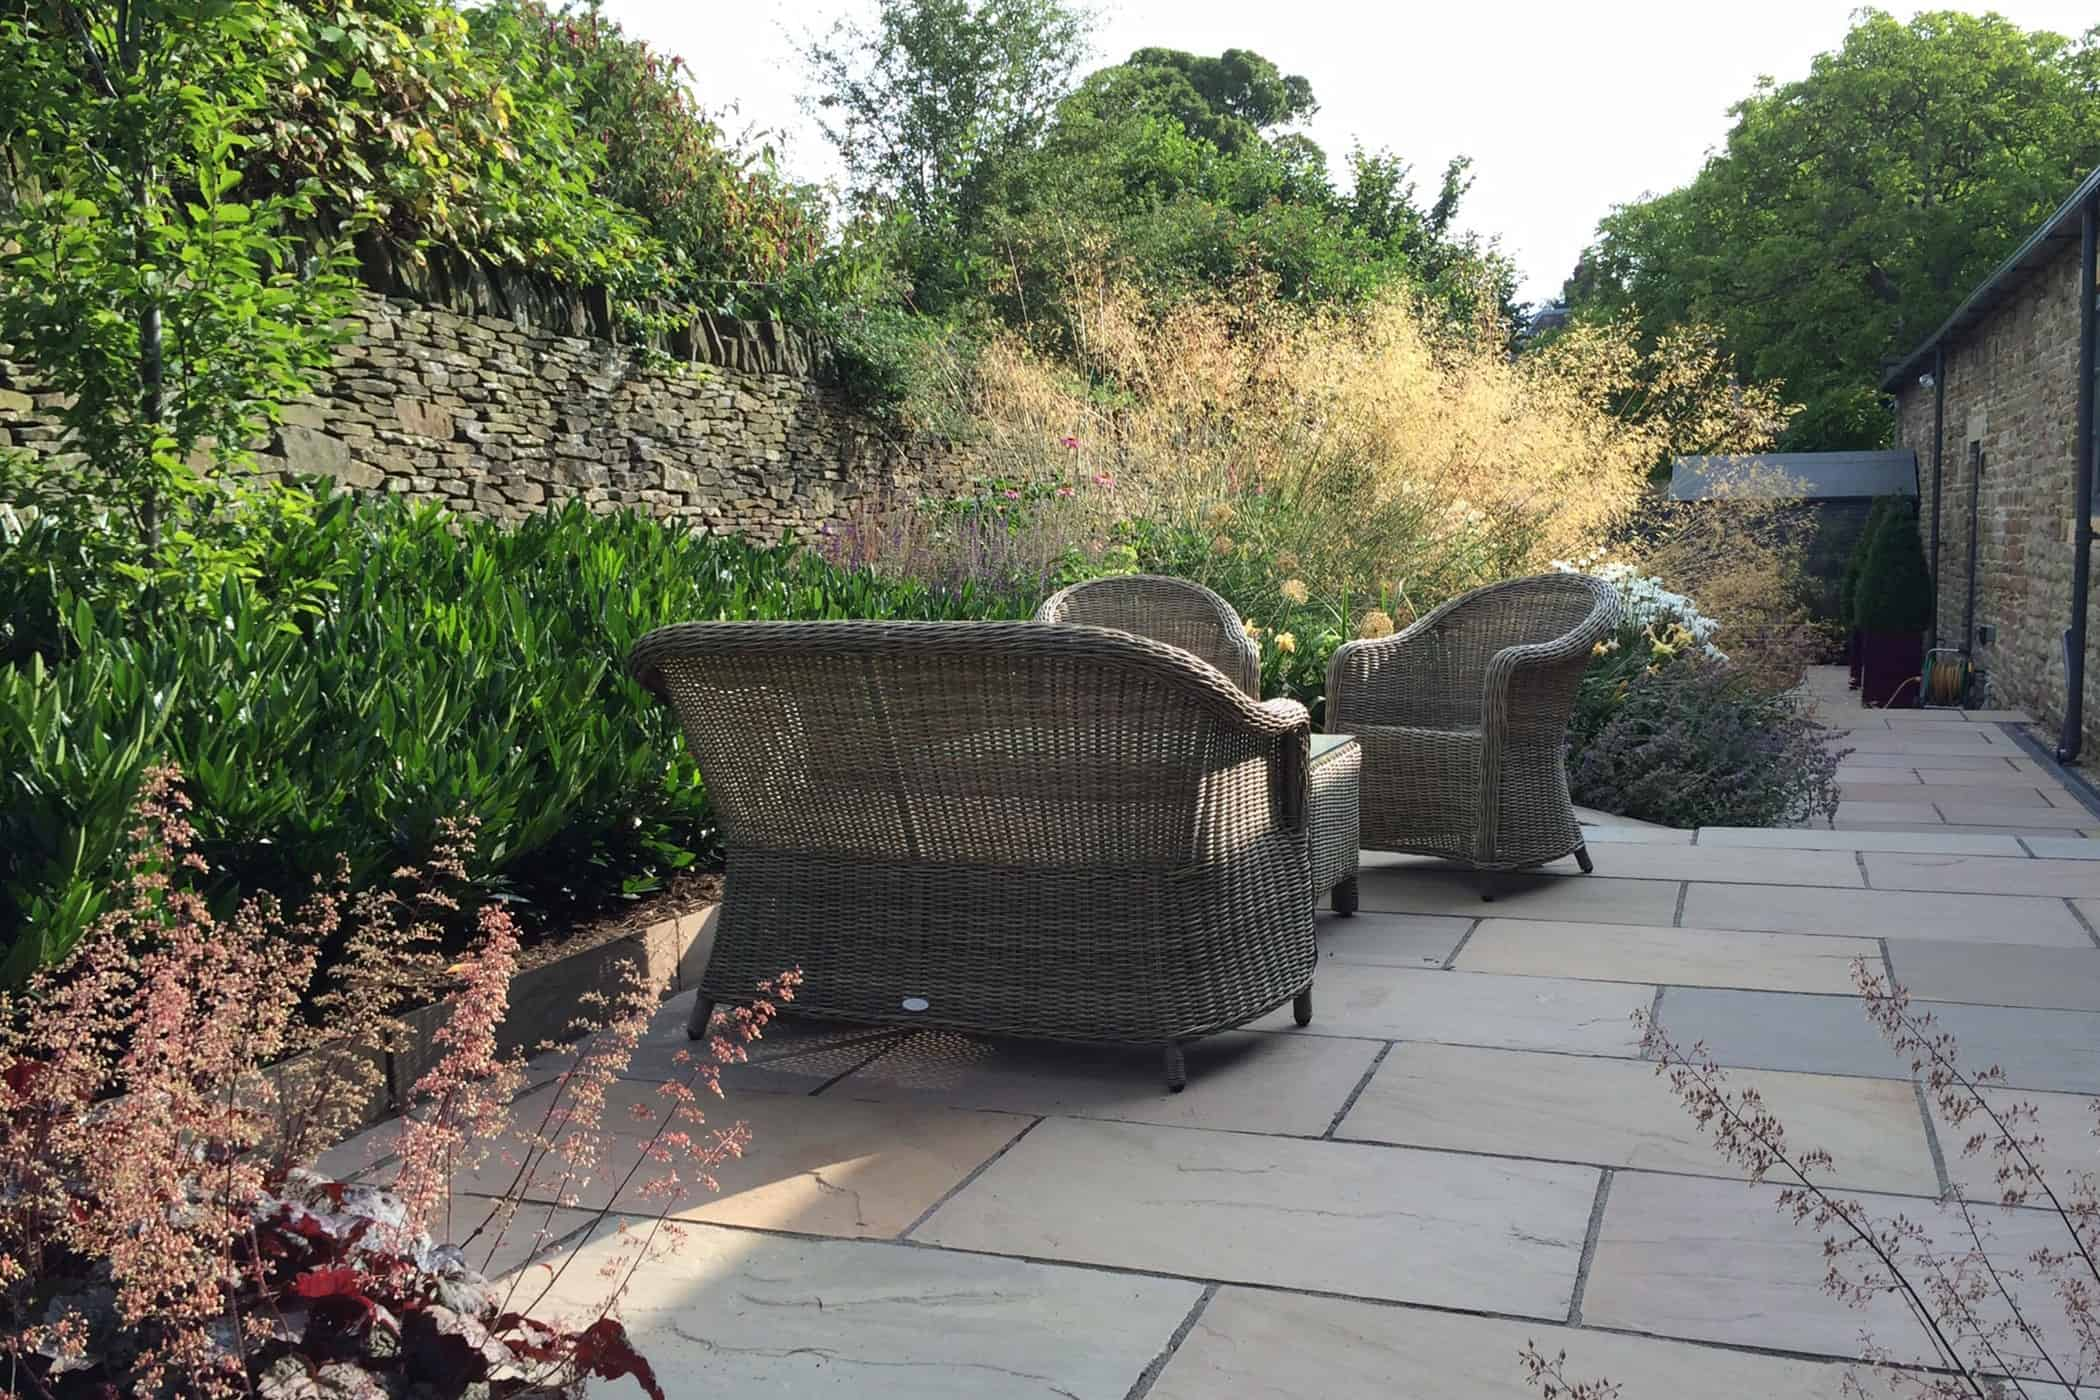 Outdoor Living L-Shaped Garden Seating | Bestall & Co